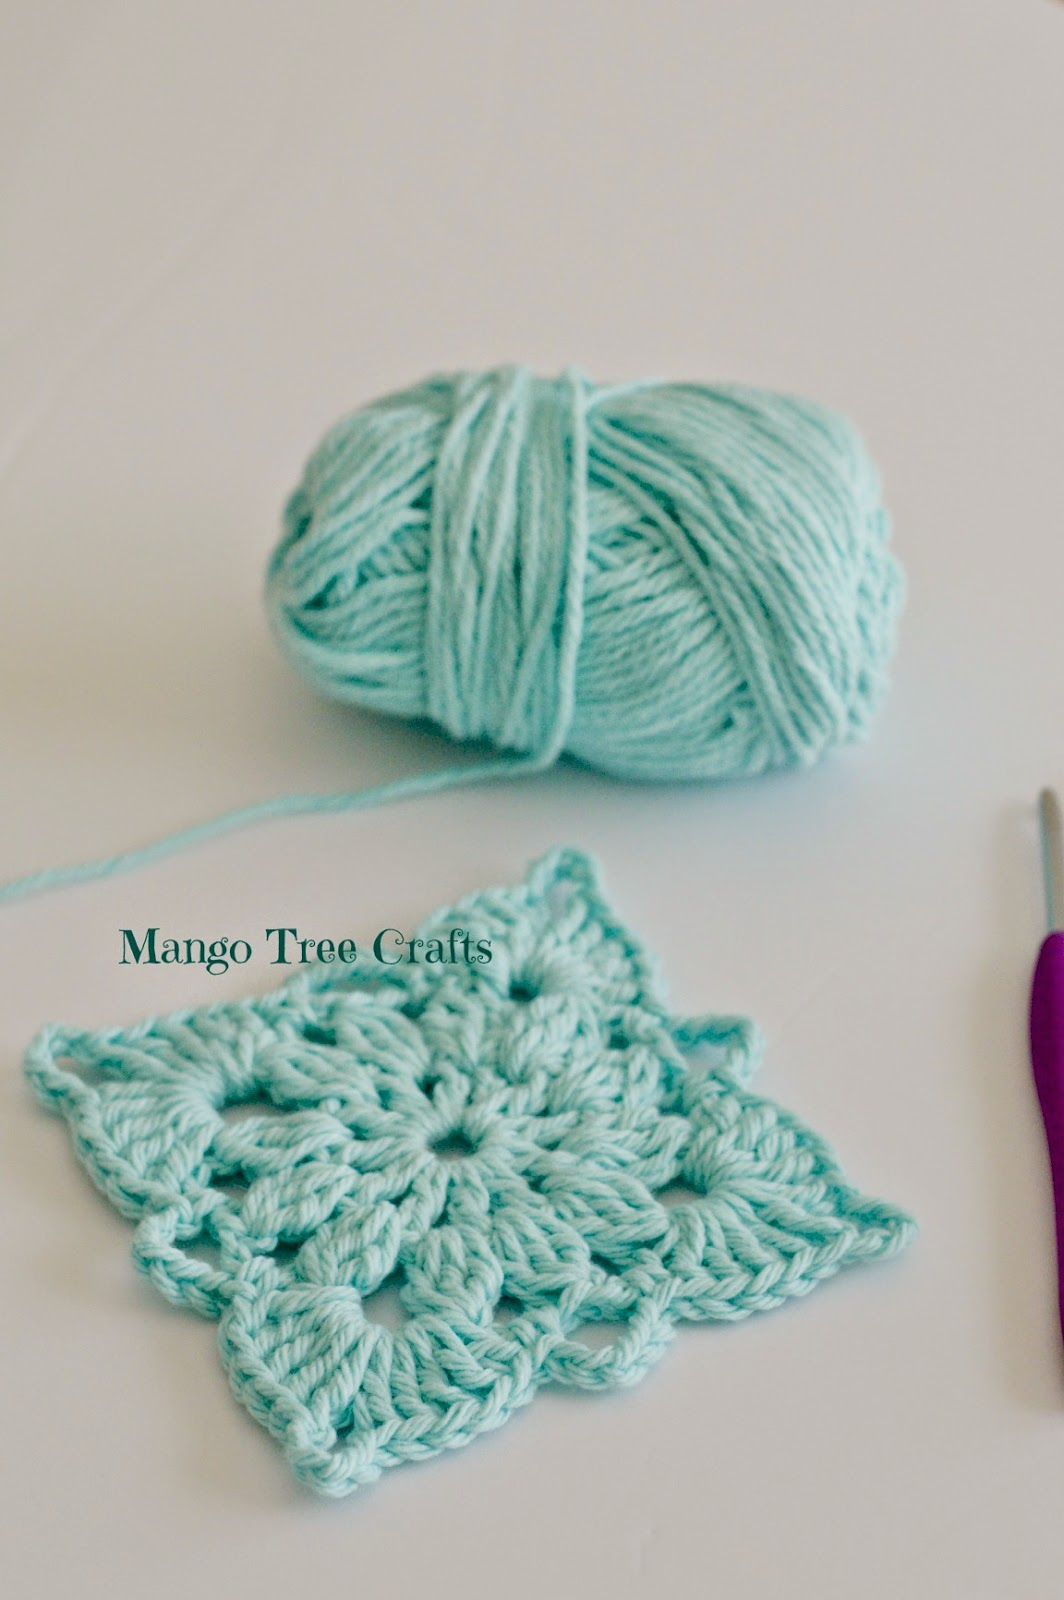 Free Crochet Pattern Square Hat : Mango Tree Crafts: Crochet Square Pattern and Photo Tutorial